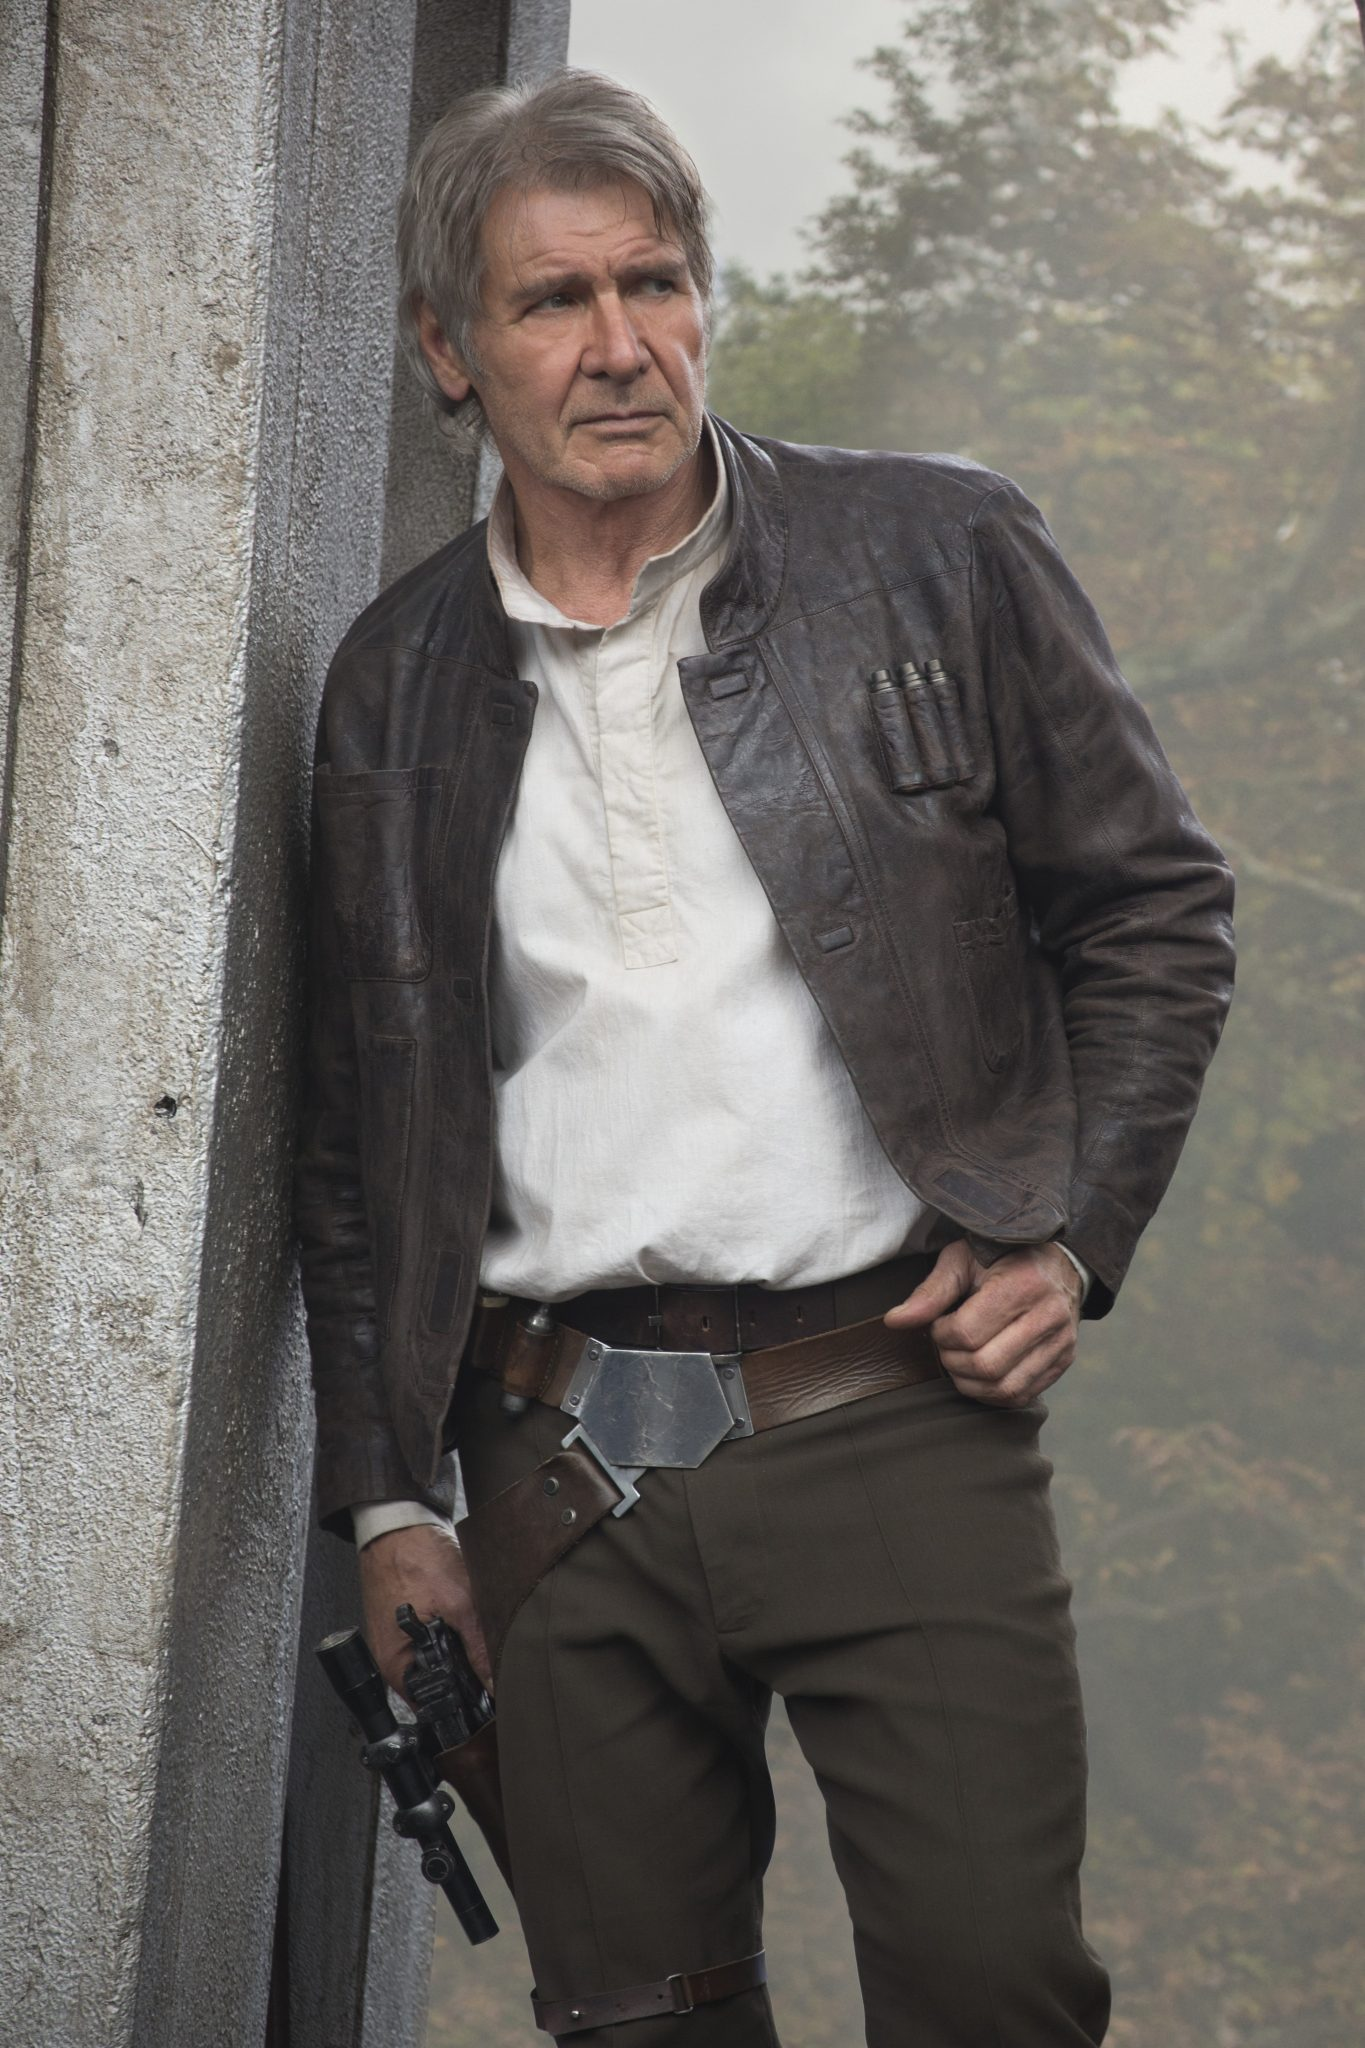 Star Wars: The Force Awakens  Han Solo (Harrison Ford)  Ph: David James  © 2015 Lucasfilm Ltd. & TM. All Right Reserved.